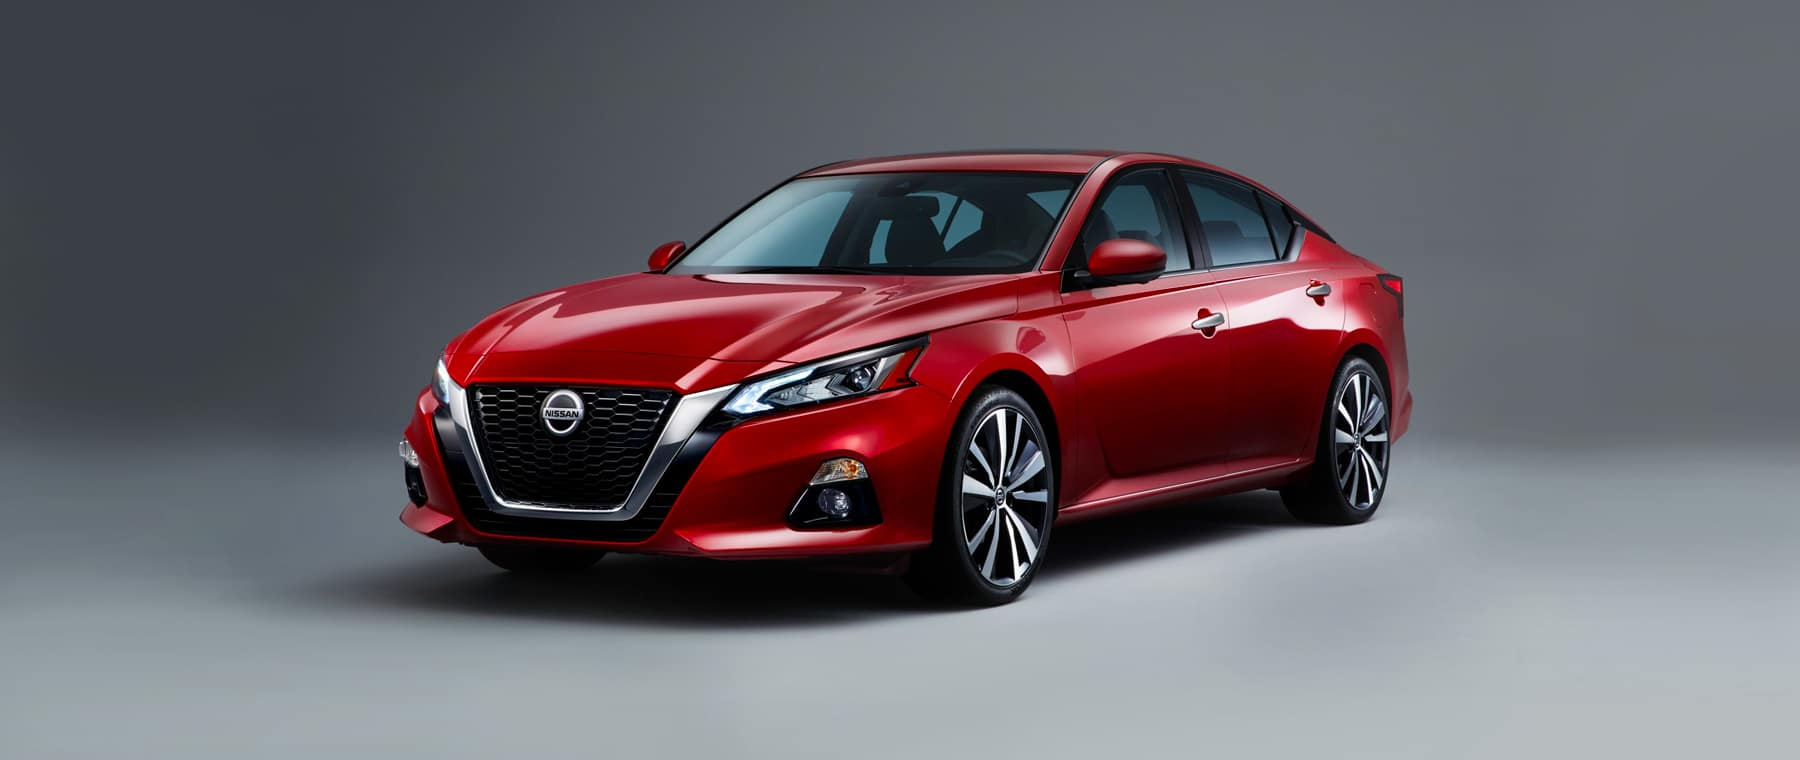 Nissan Dealerships In Alabama >> Commonwealth Nissan In Lawrence Ma New Used Nissan Cars